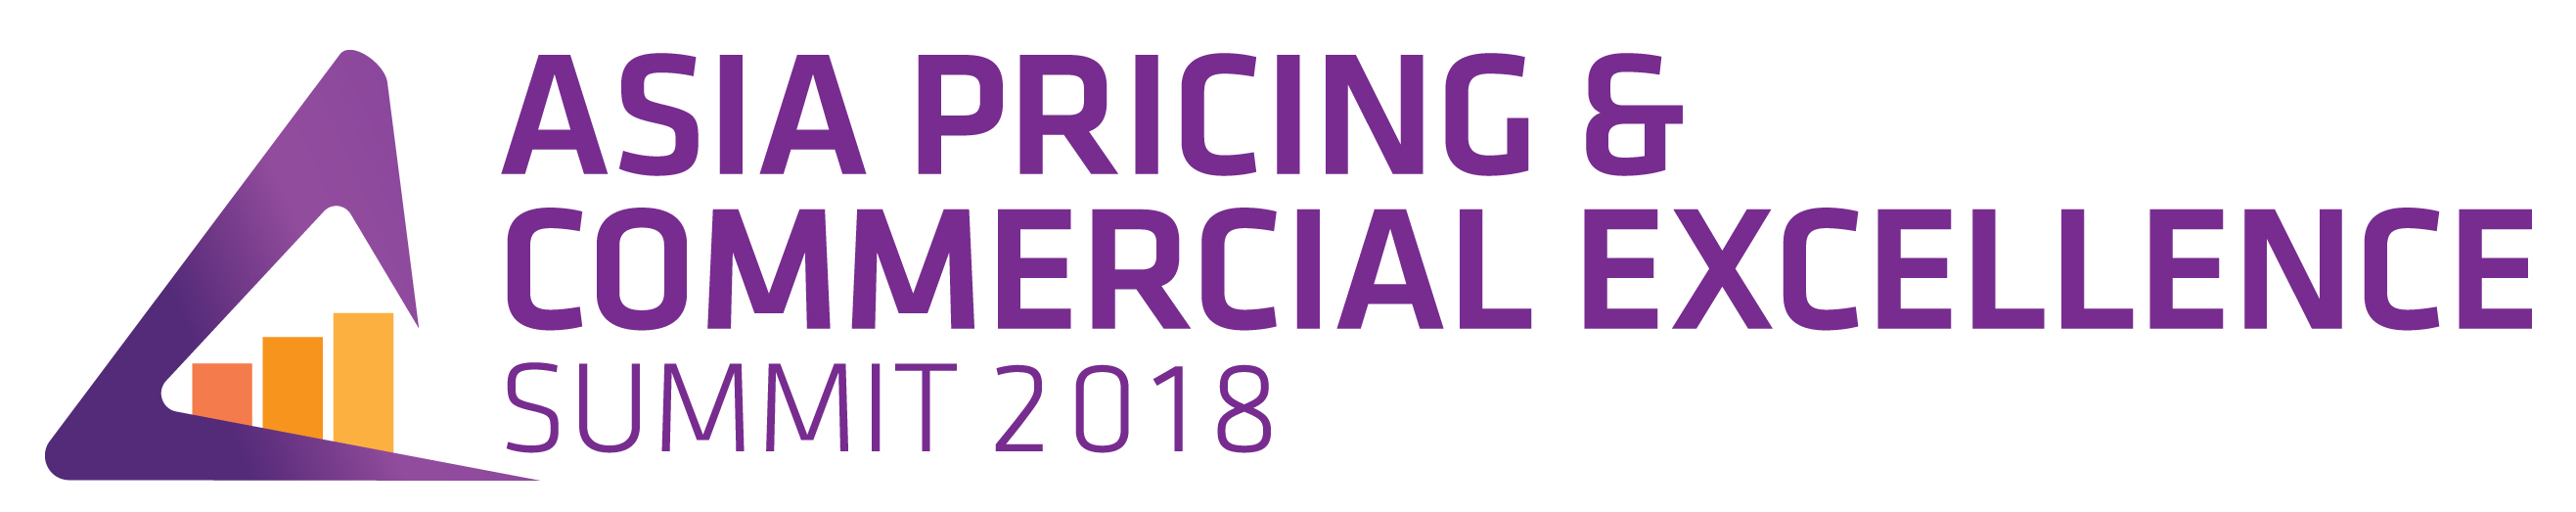 Asia Pricing & Commercial Excellence Summit Preliminary Agenda